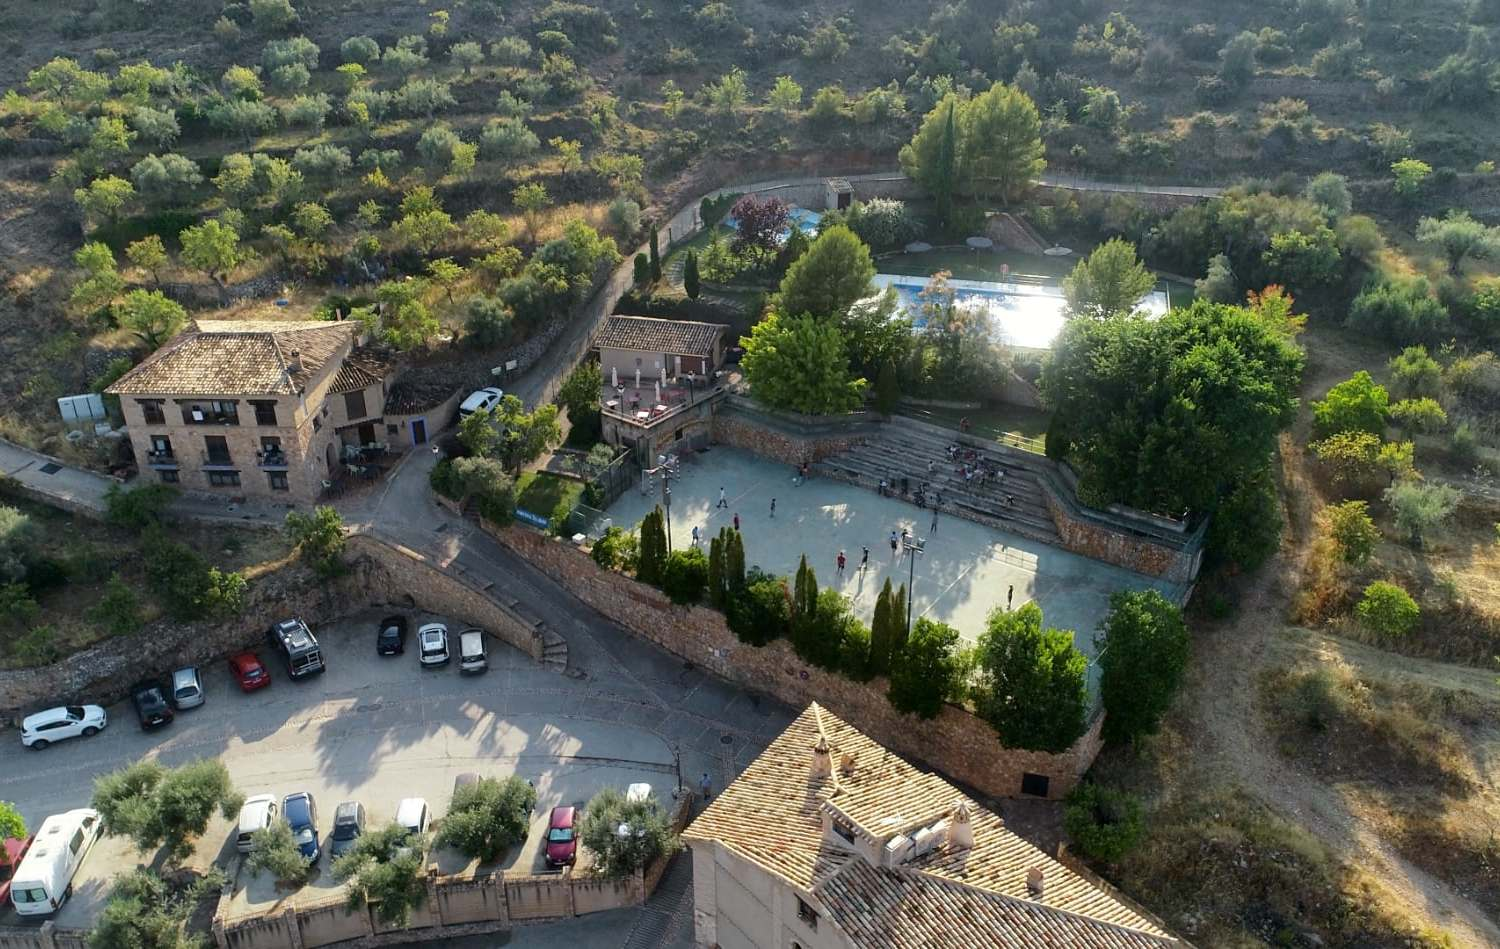 Alquezar in the Pyrenees Mountains